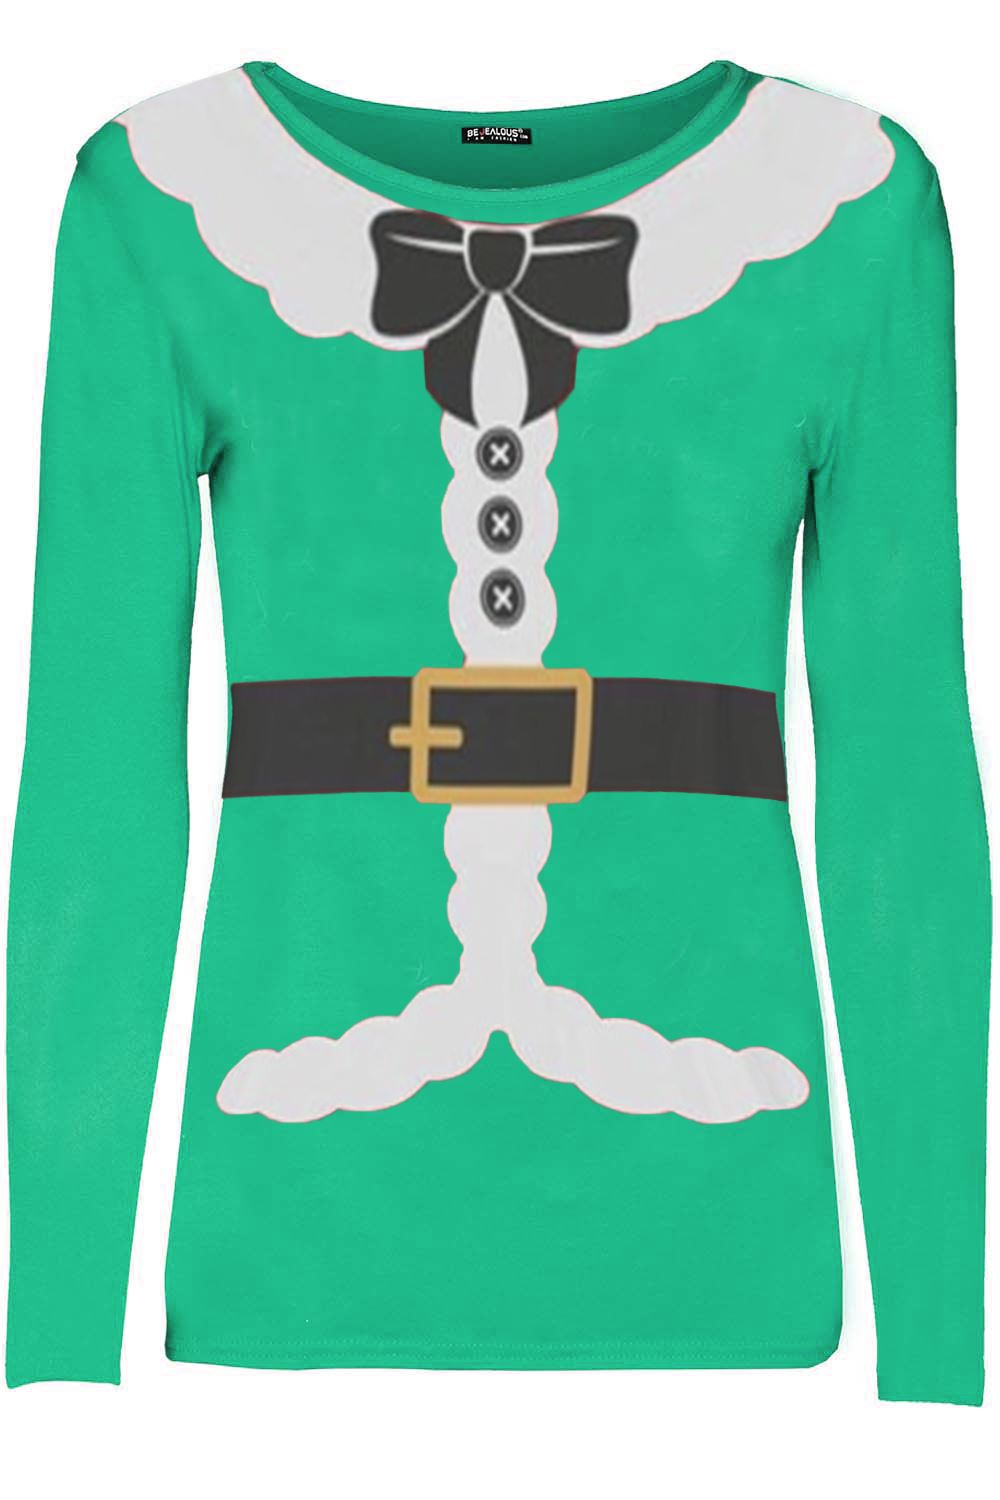 Ladies-Womens-Xmas-Christmas-Santa-Claus-Ribbon-Suit-Belted-Costume-T-Shirt-Top